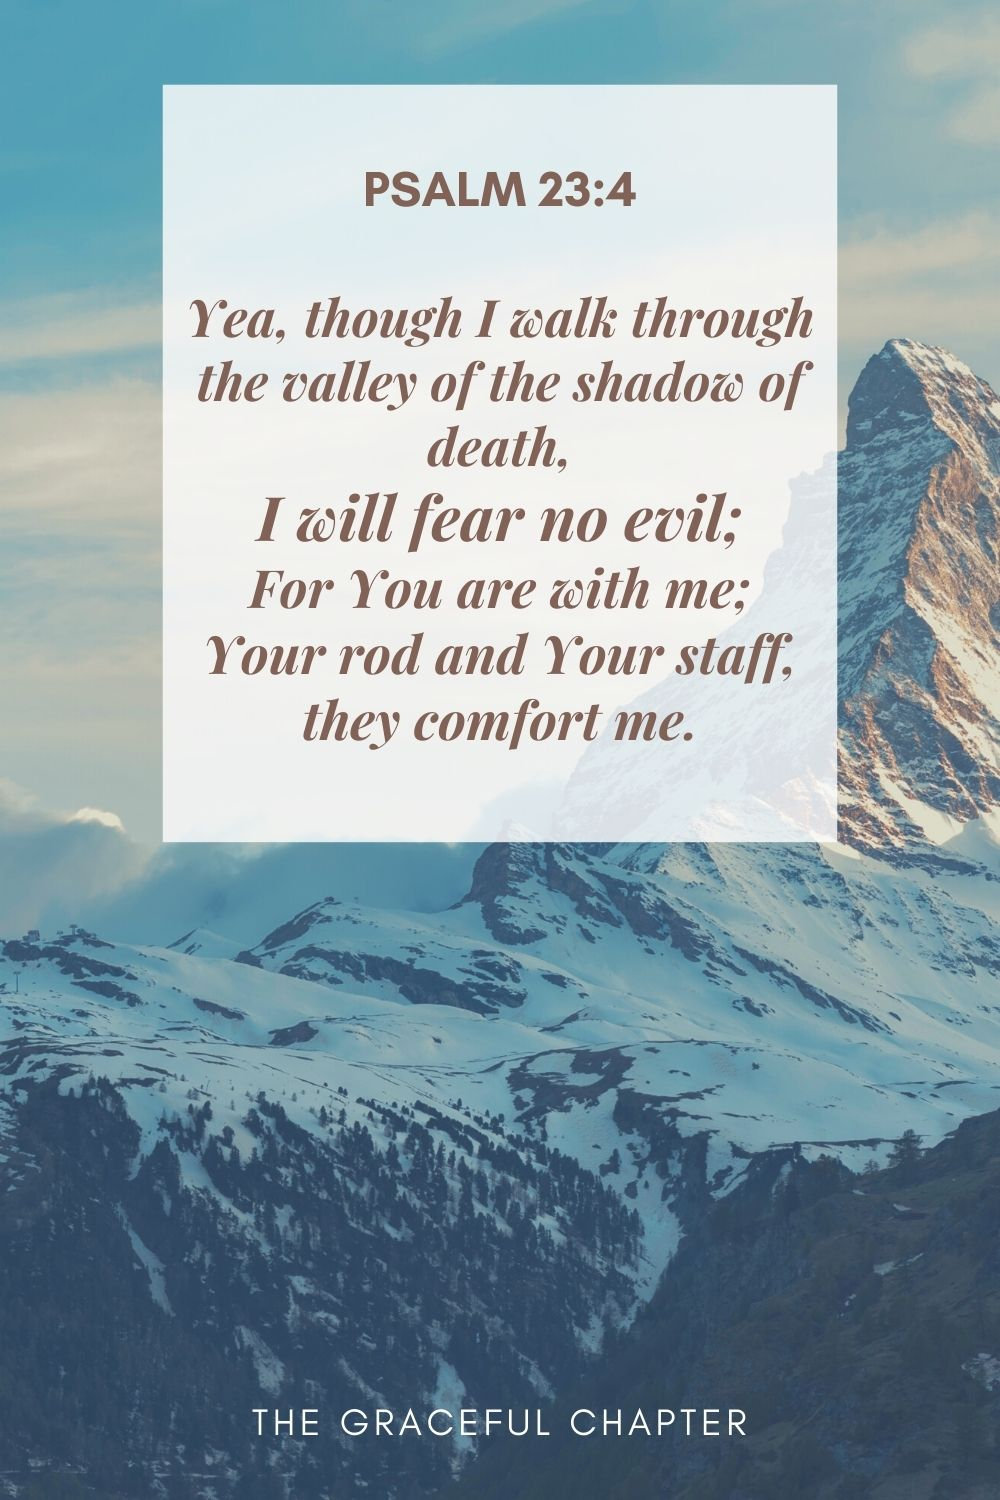 Yea, though I walk through the valley of the shadow of death, I will fear no evil; For You are with me; Your rod and Your staff, they comfort me. Psalm 23:4